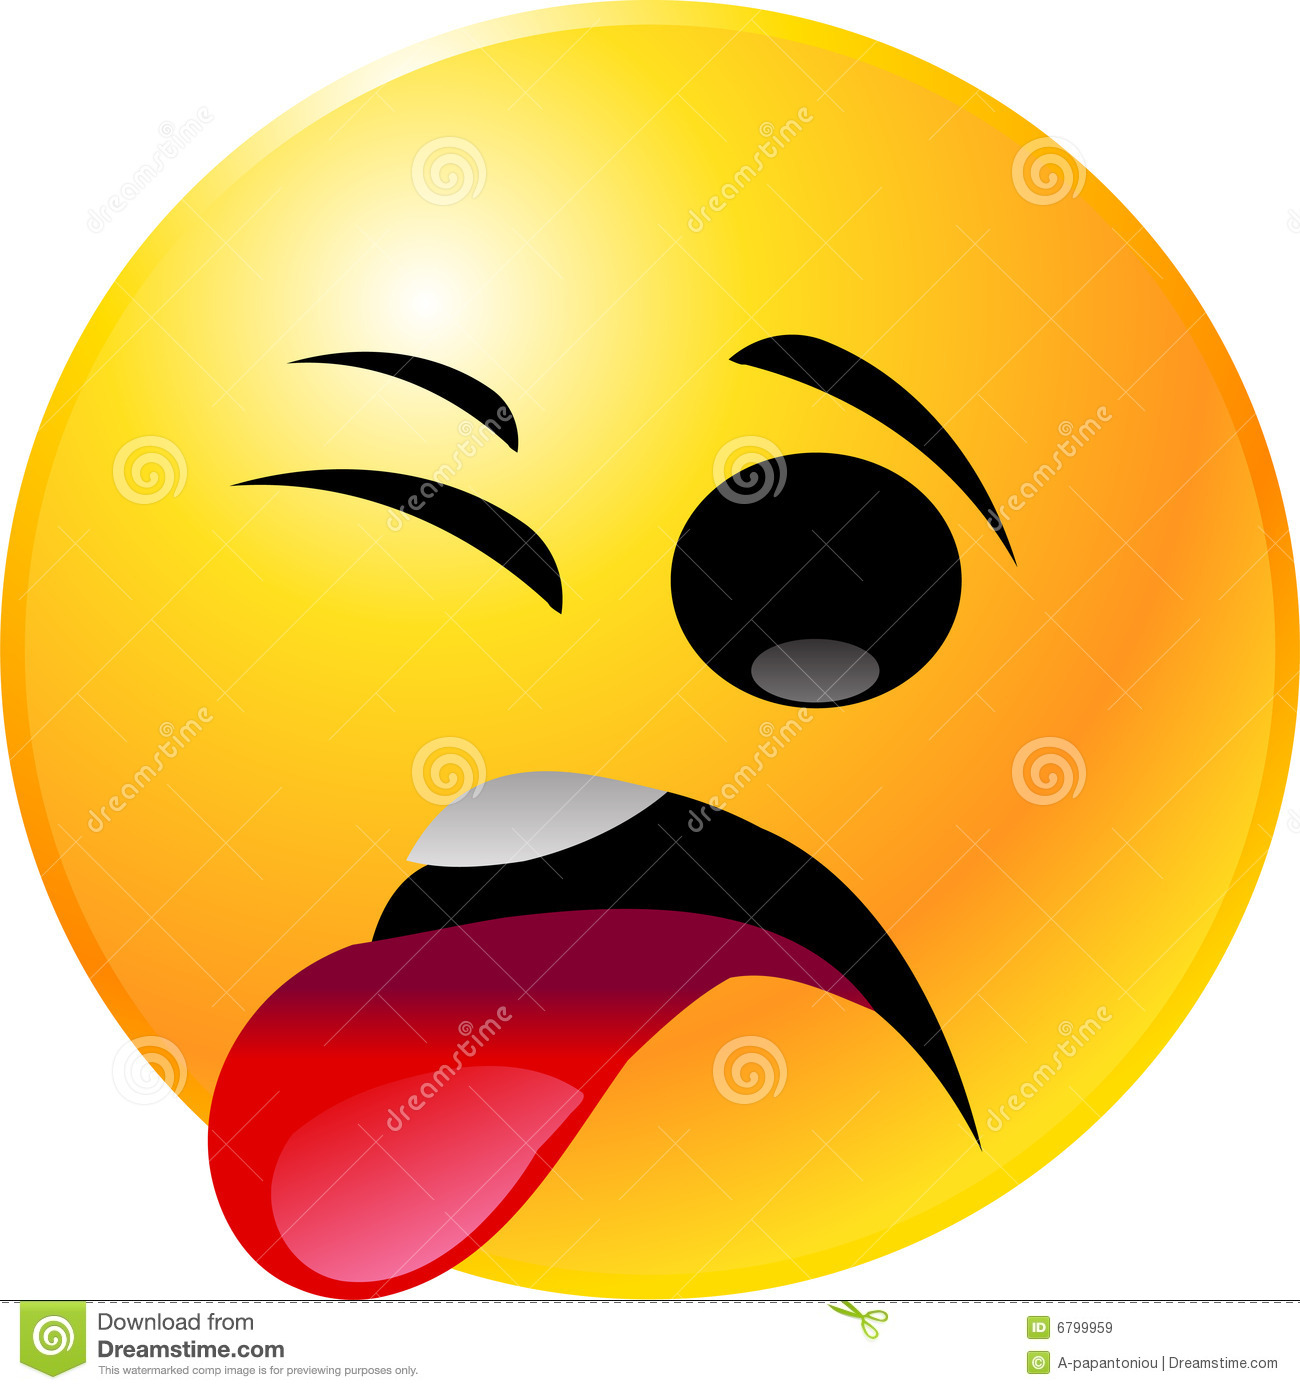 Shocked Smiley Face Clipart.